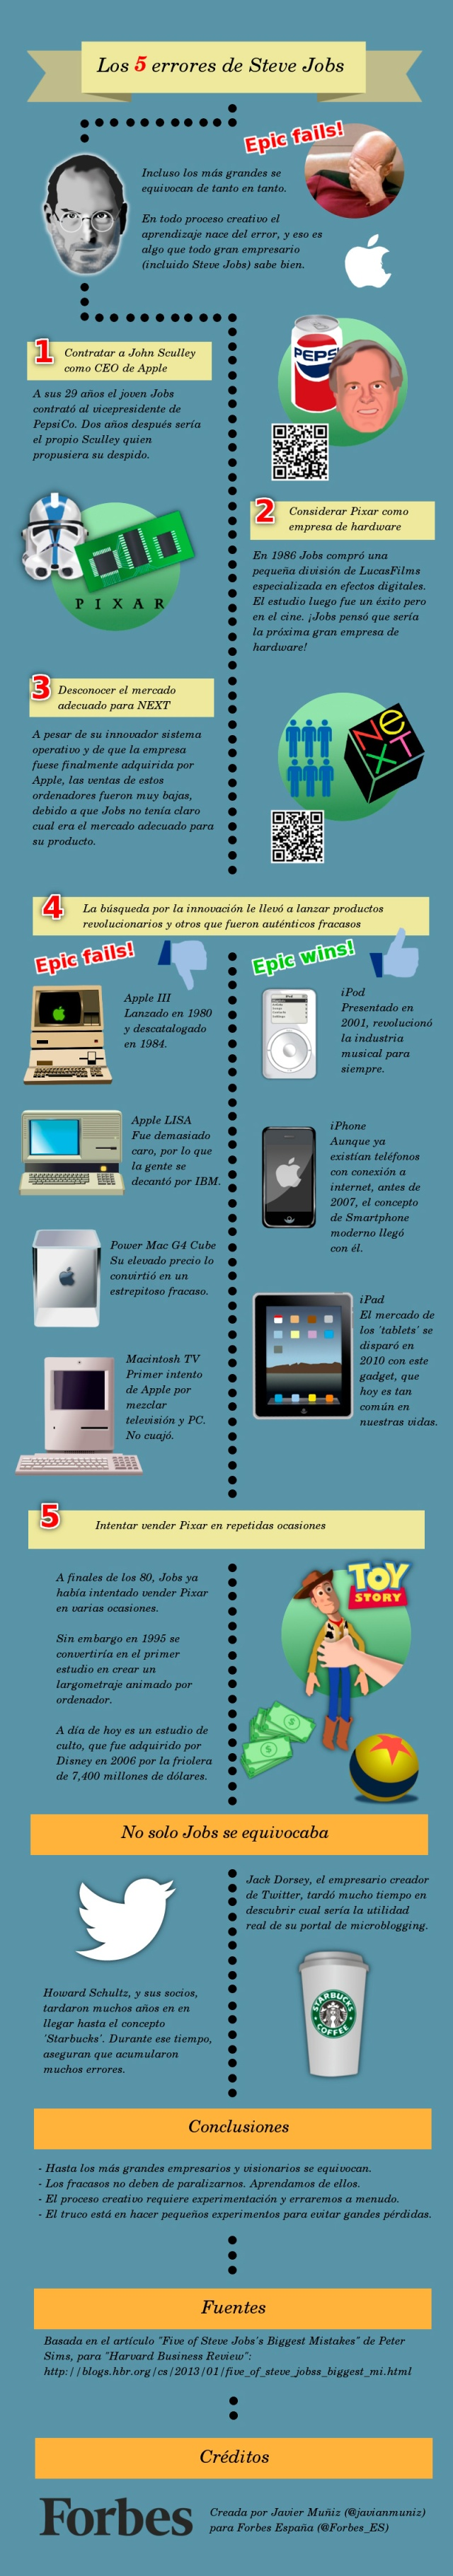 Los 5 errores de Steve Jobs